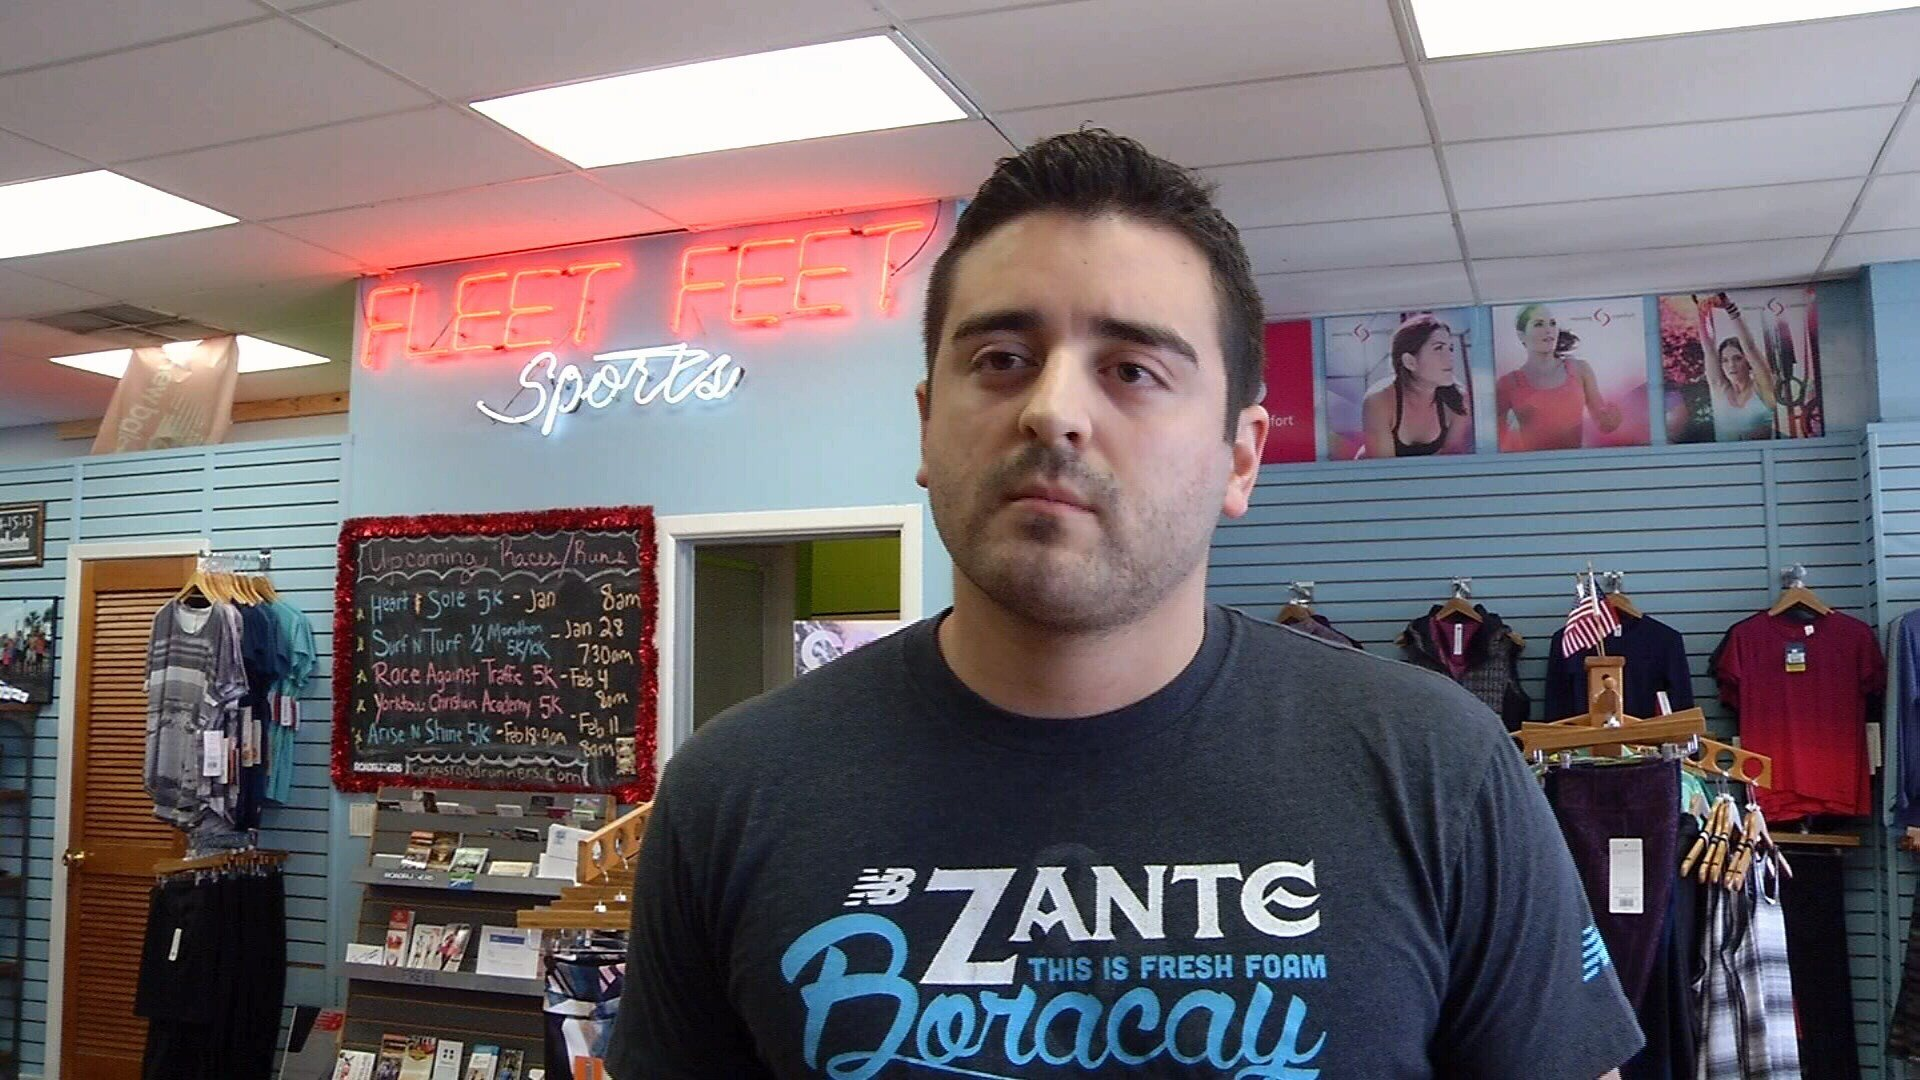 Fleet Feet store manager Adrian Maquez described Fuqua as a fun loving guy.